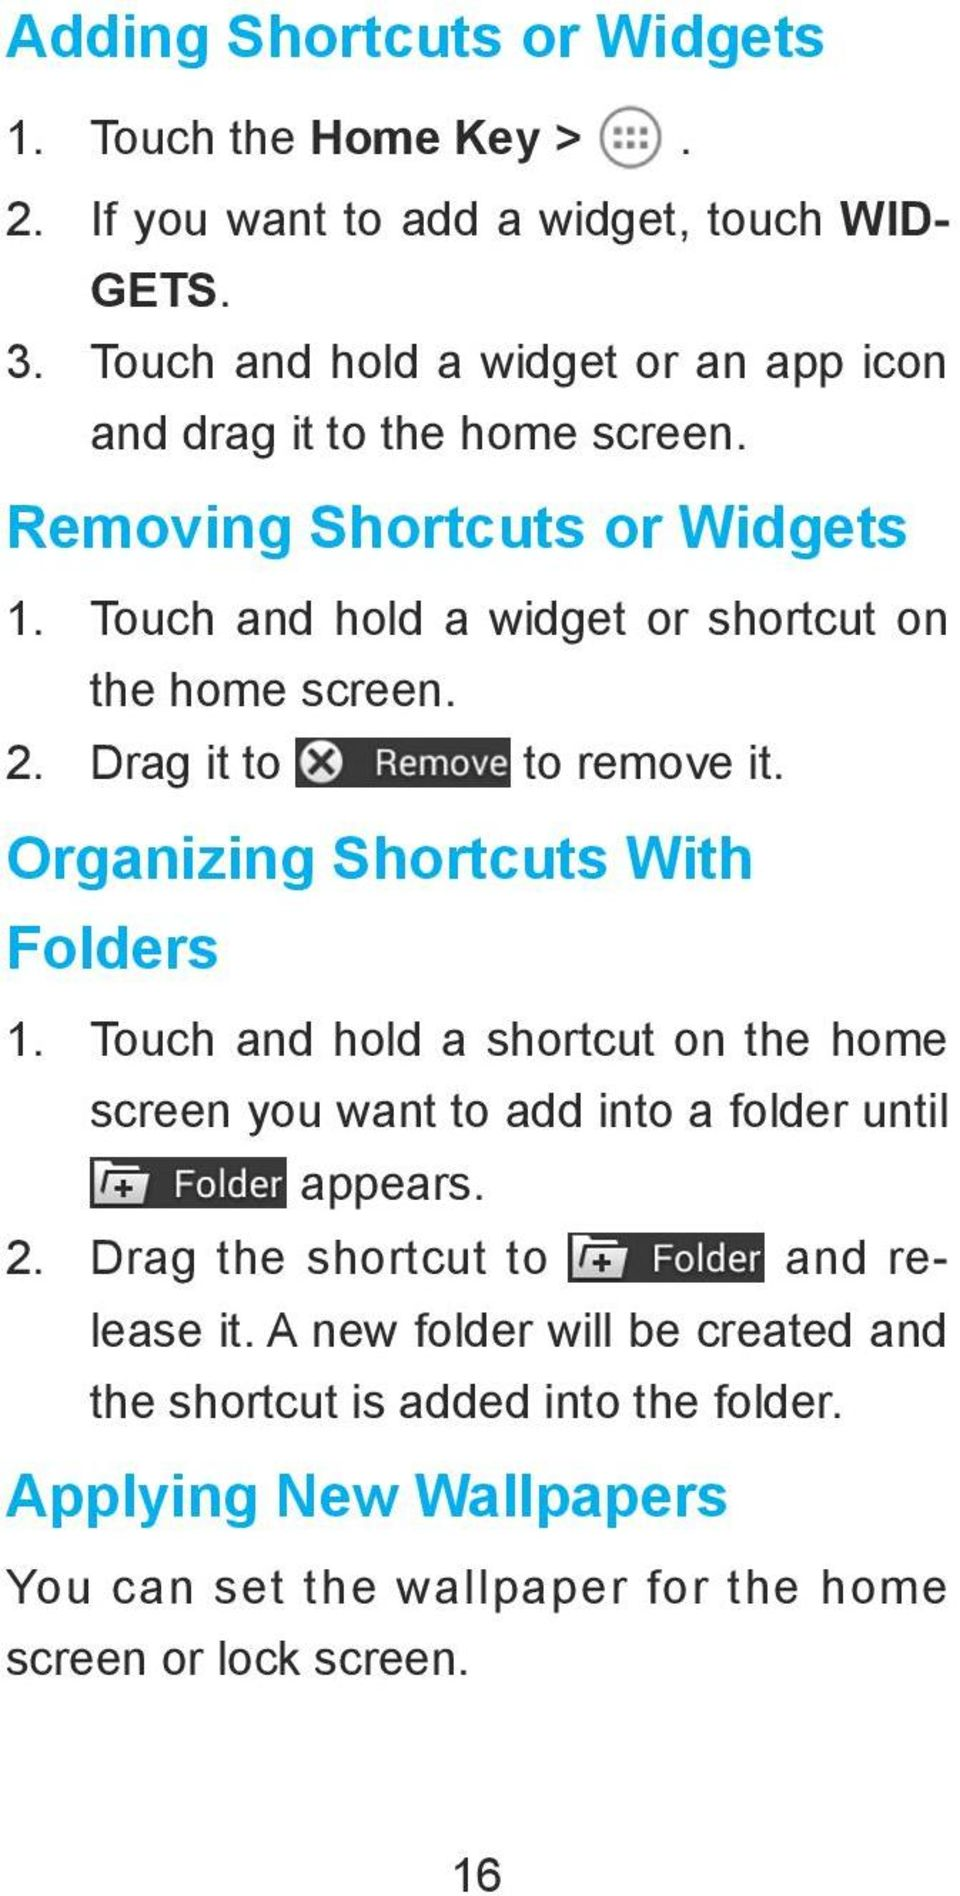 Touch and hold a widget or shortcut on the home screen. 2. Drag it to to remove it. Organizing Shortcuts With Folders 1.